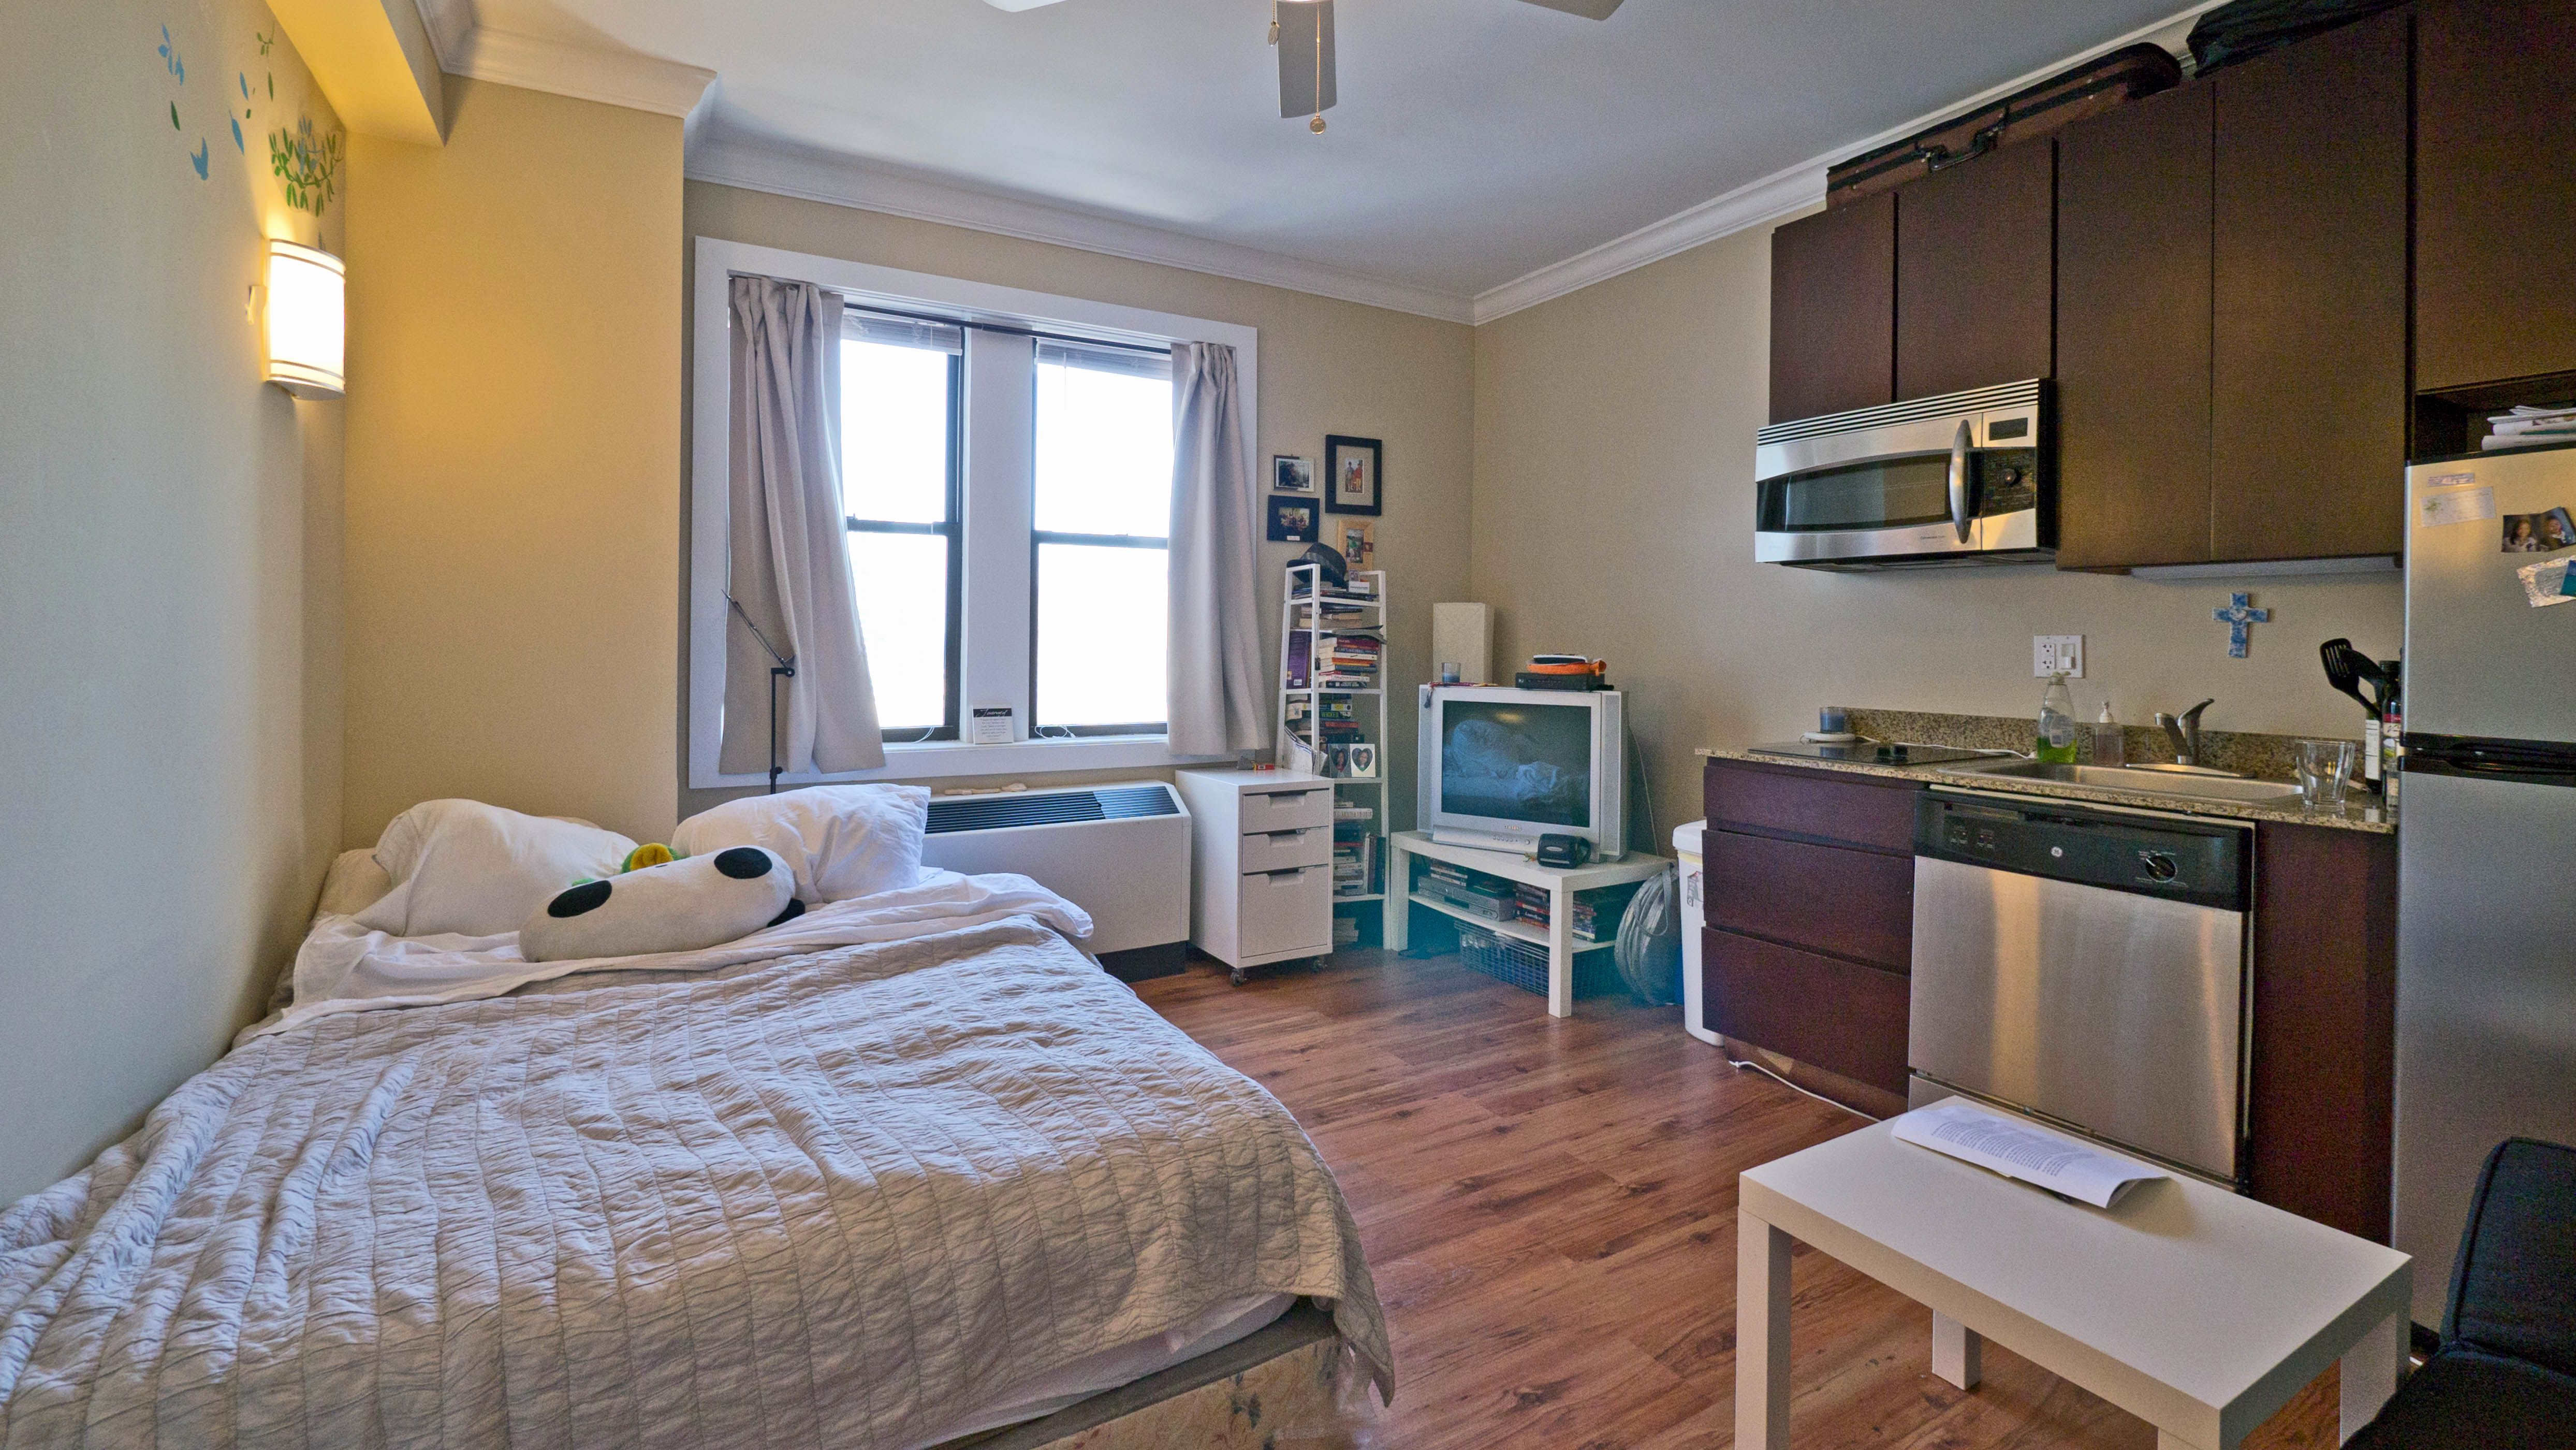 27 Lovely Bedroom Apartment Gold Coast Design The Affordable Hotels You Score With Us Will Choose The Pressur Renting A House Bedroom Design Bedroom Apartment